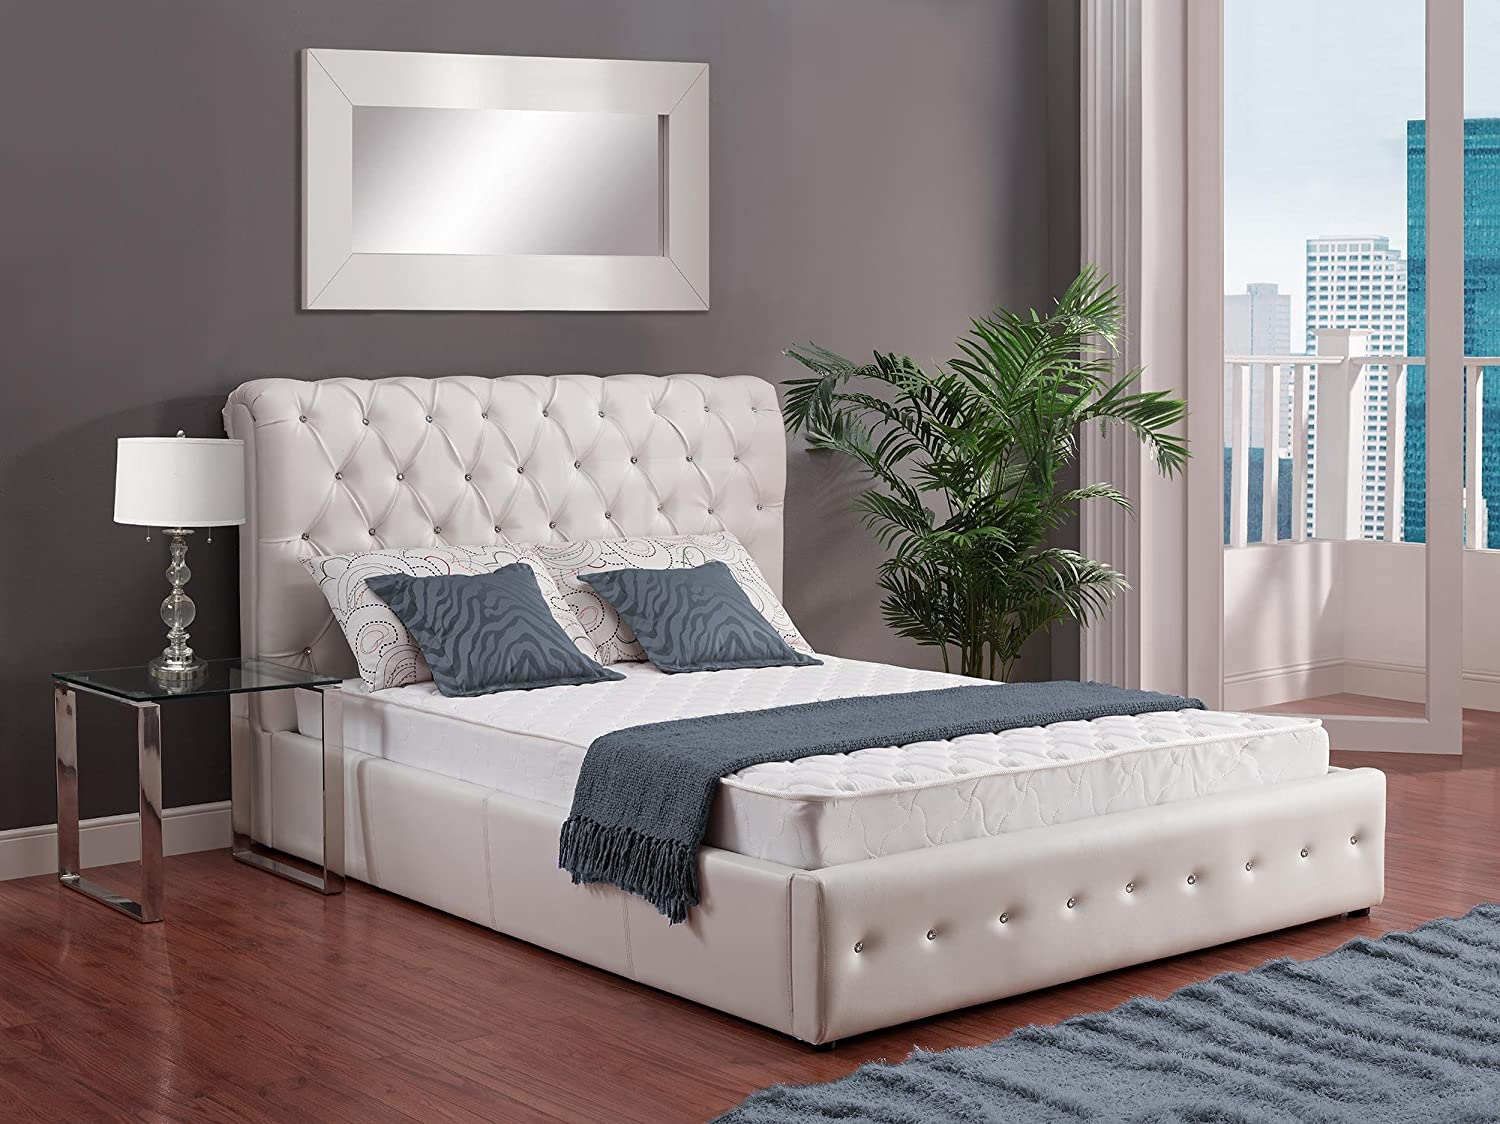 Essential 6 Inch Coil Mattress By Signature Sleep